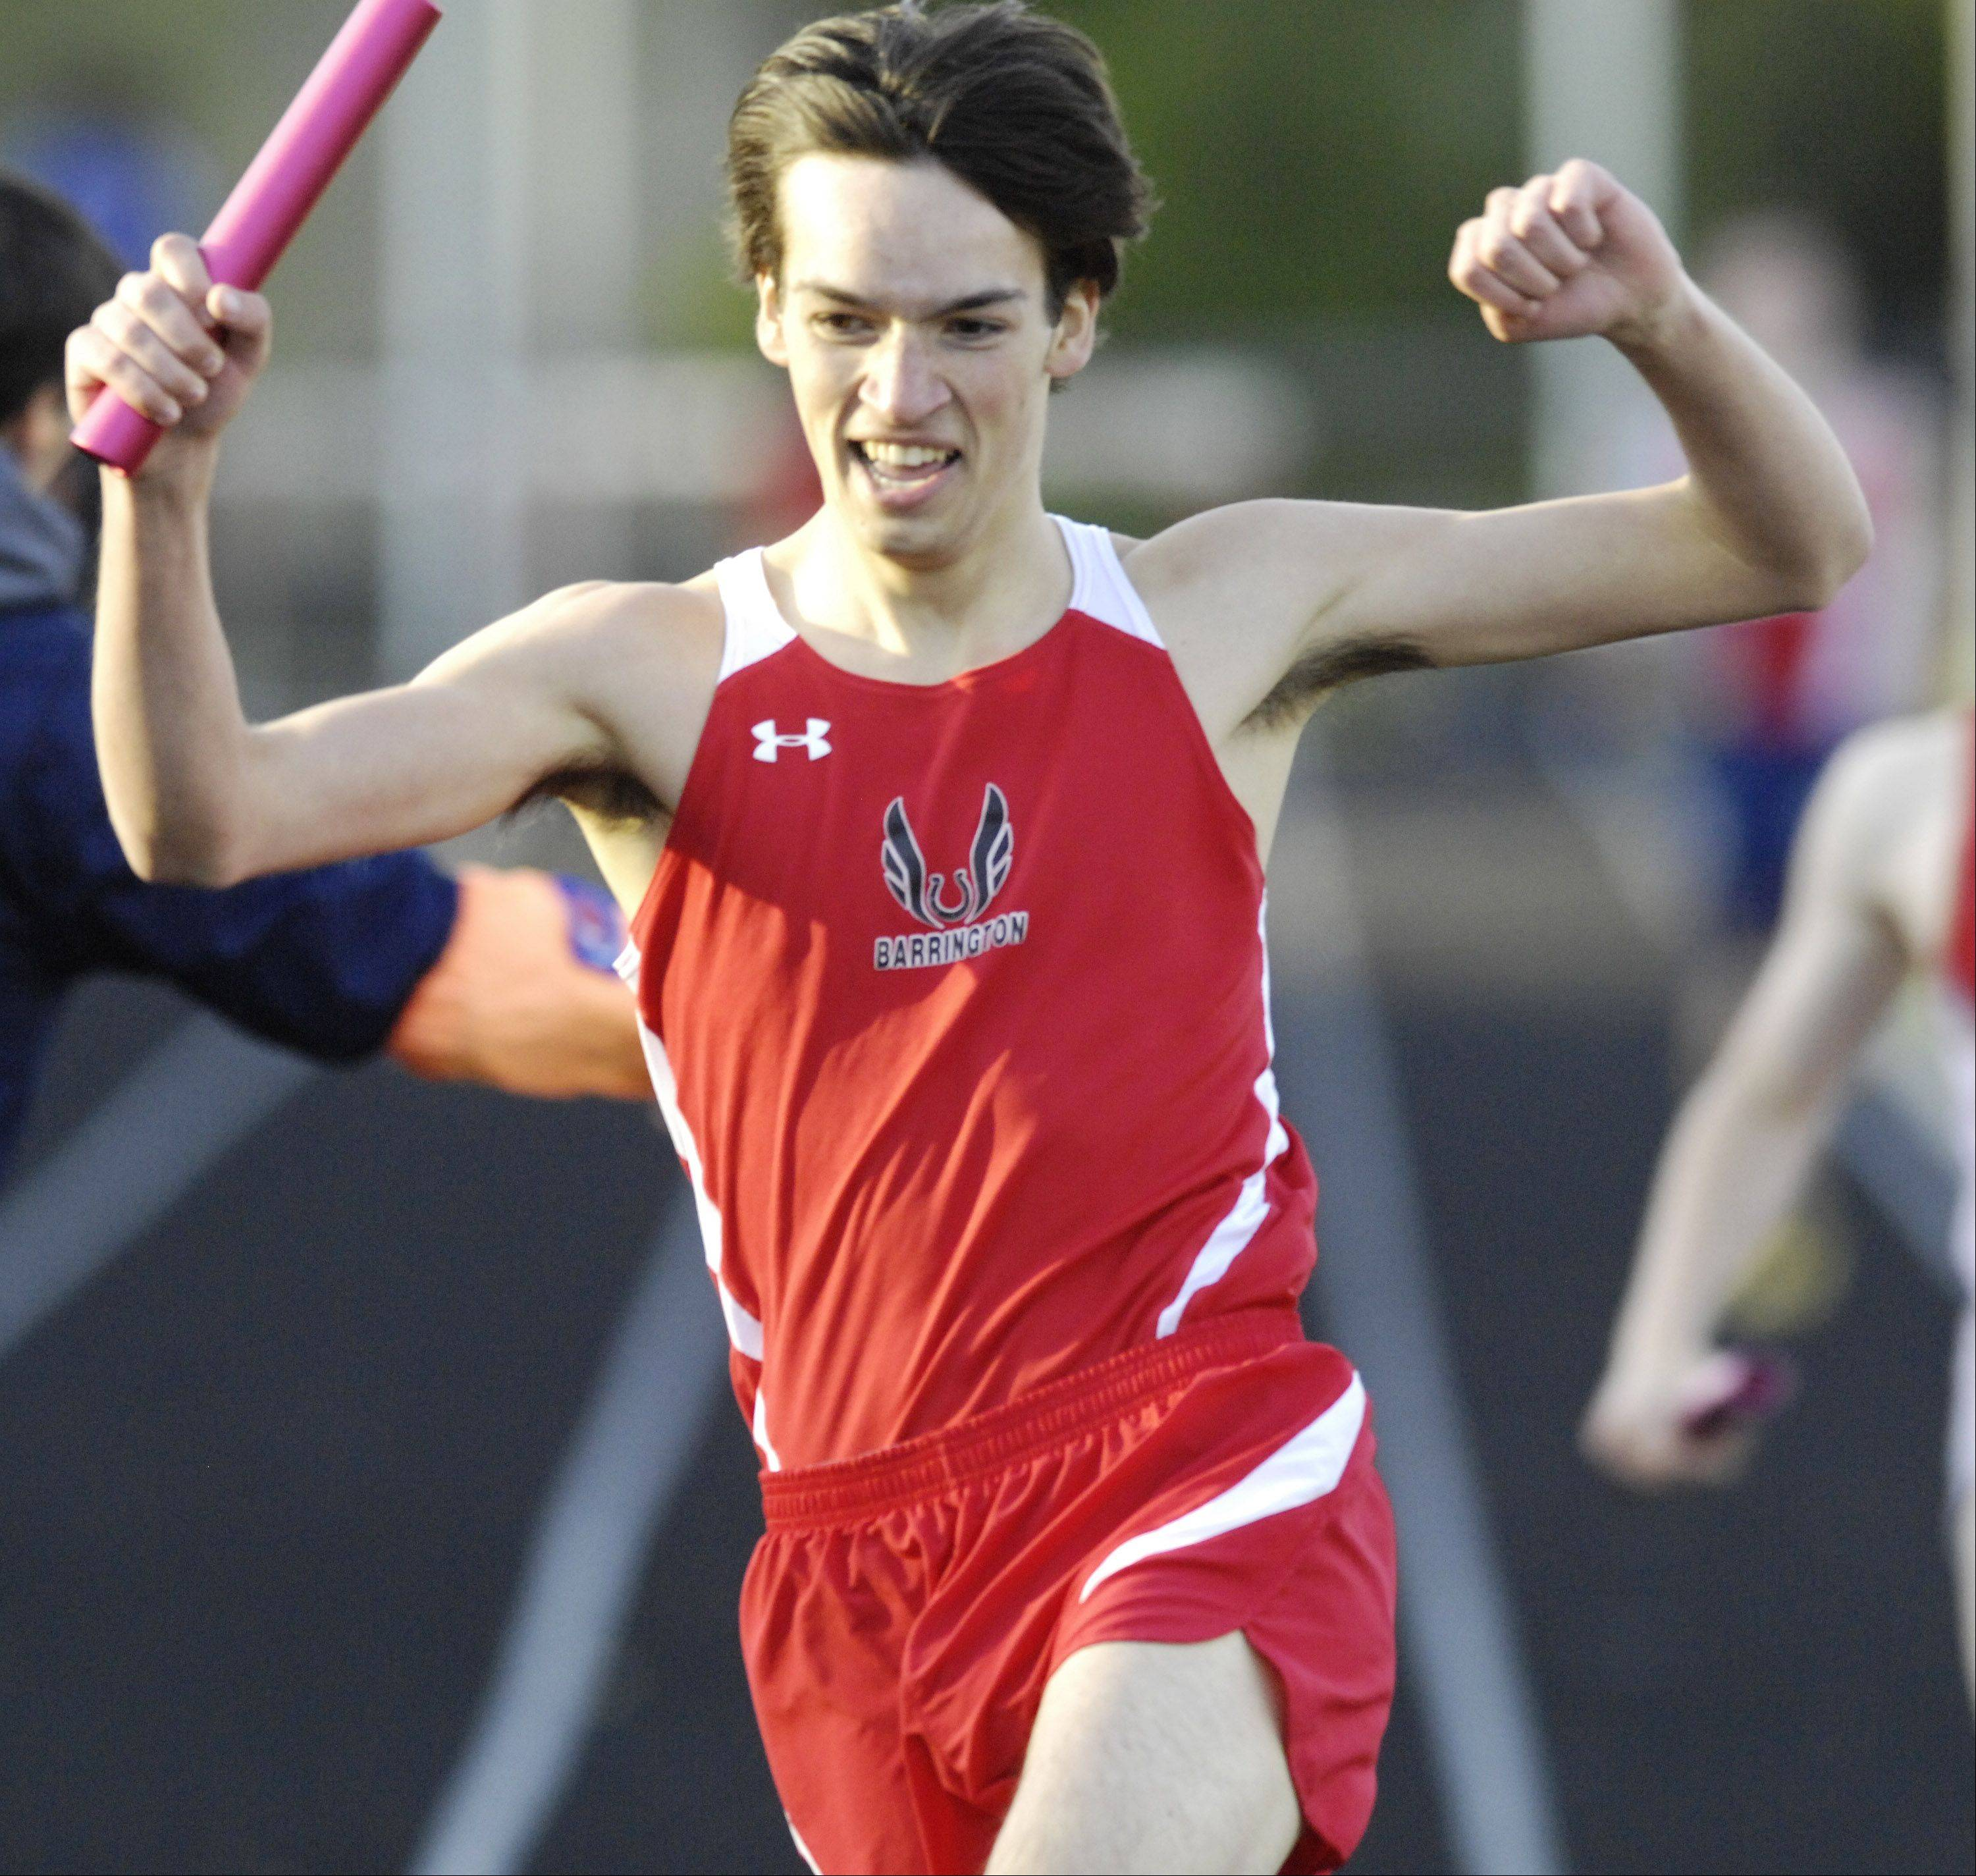 Barrington's Phil Quarfoot celebrates after his team came from behind to win the 4x800-meter relay during Tuesday's Mid-Suburban League West championships at Schaumburg.